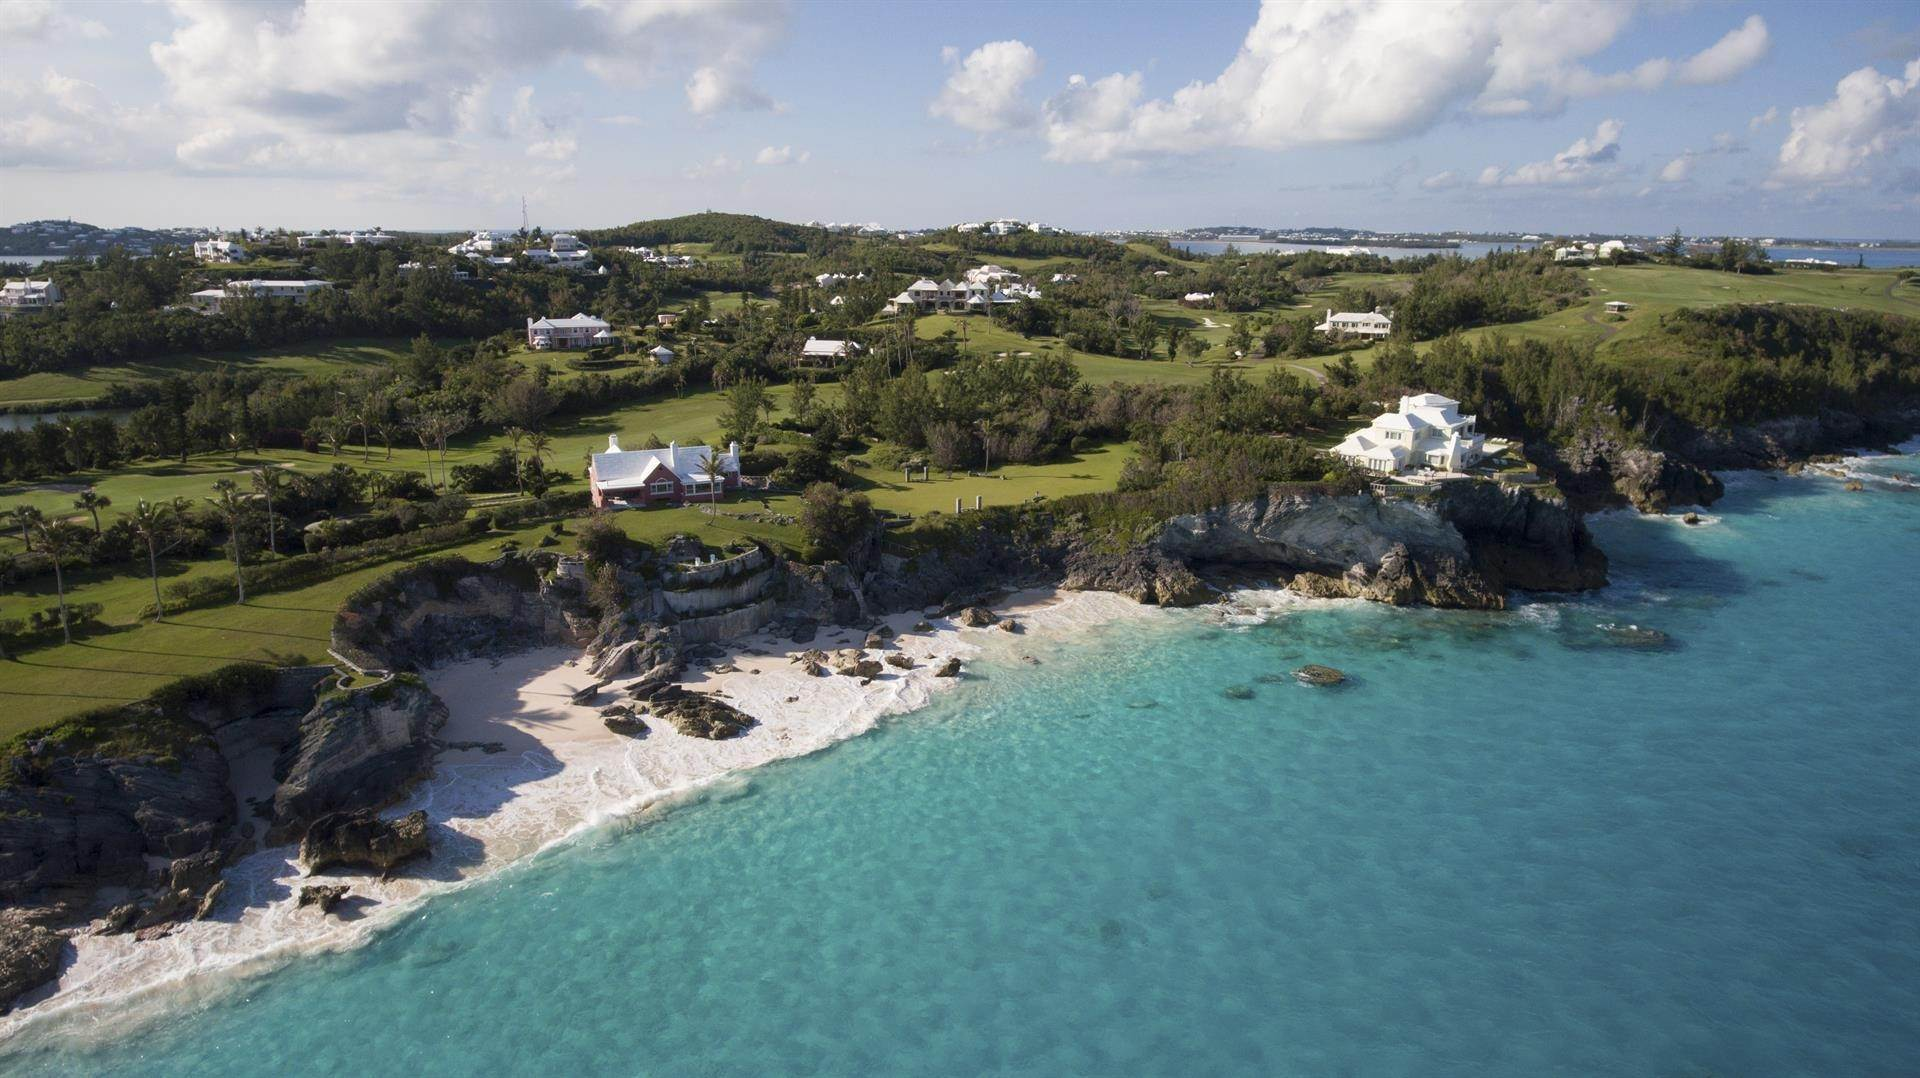 27. Địa ốc vì Bán tại Roughill In Tucker's Town Roughill In Tucker's Town, 6 Long Lane,Bermuda – Sinclair Realty